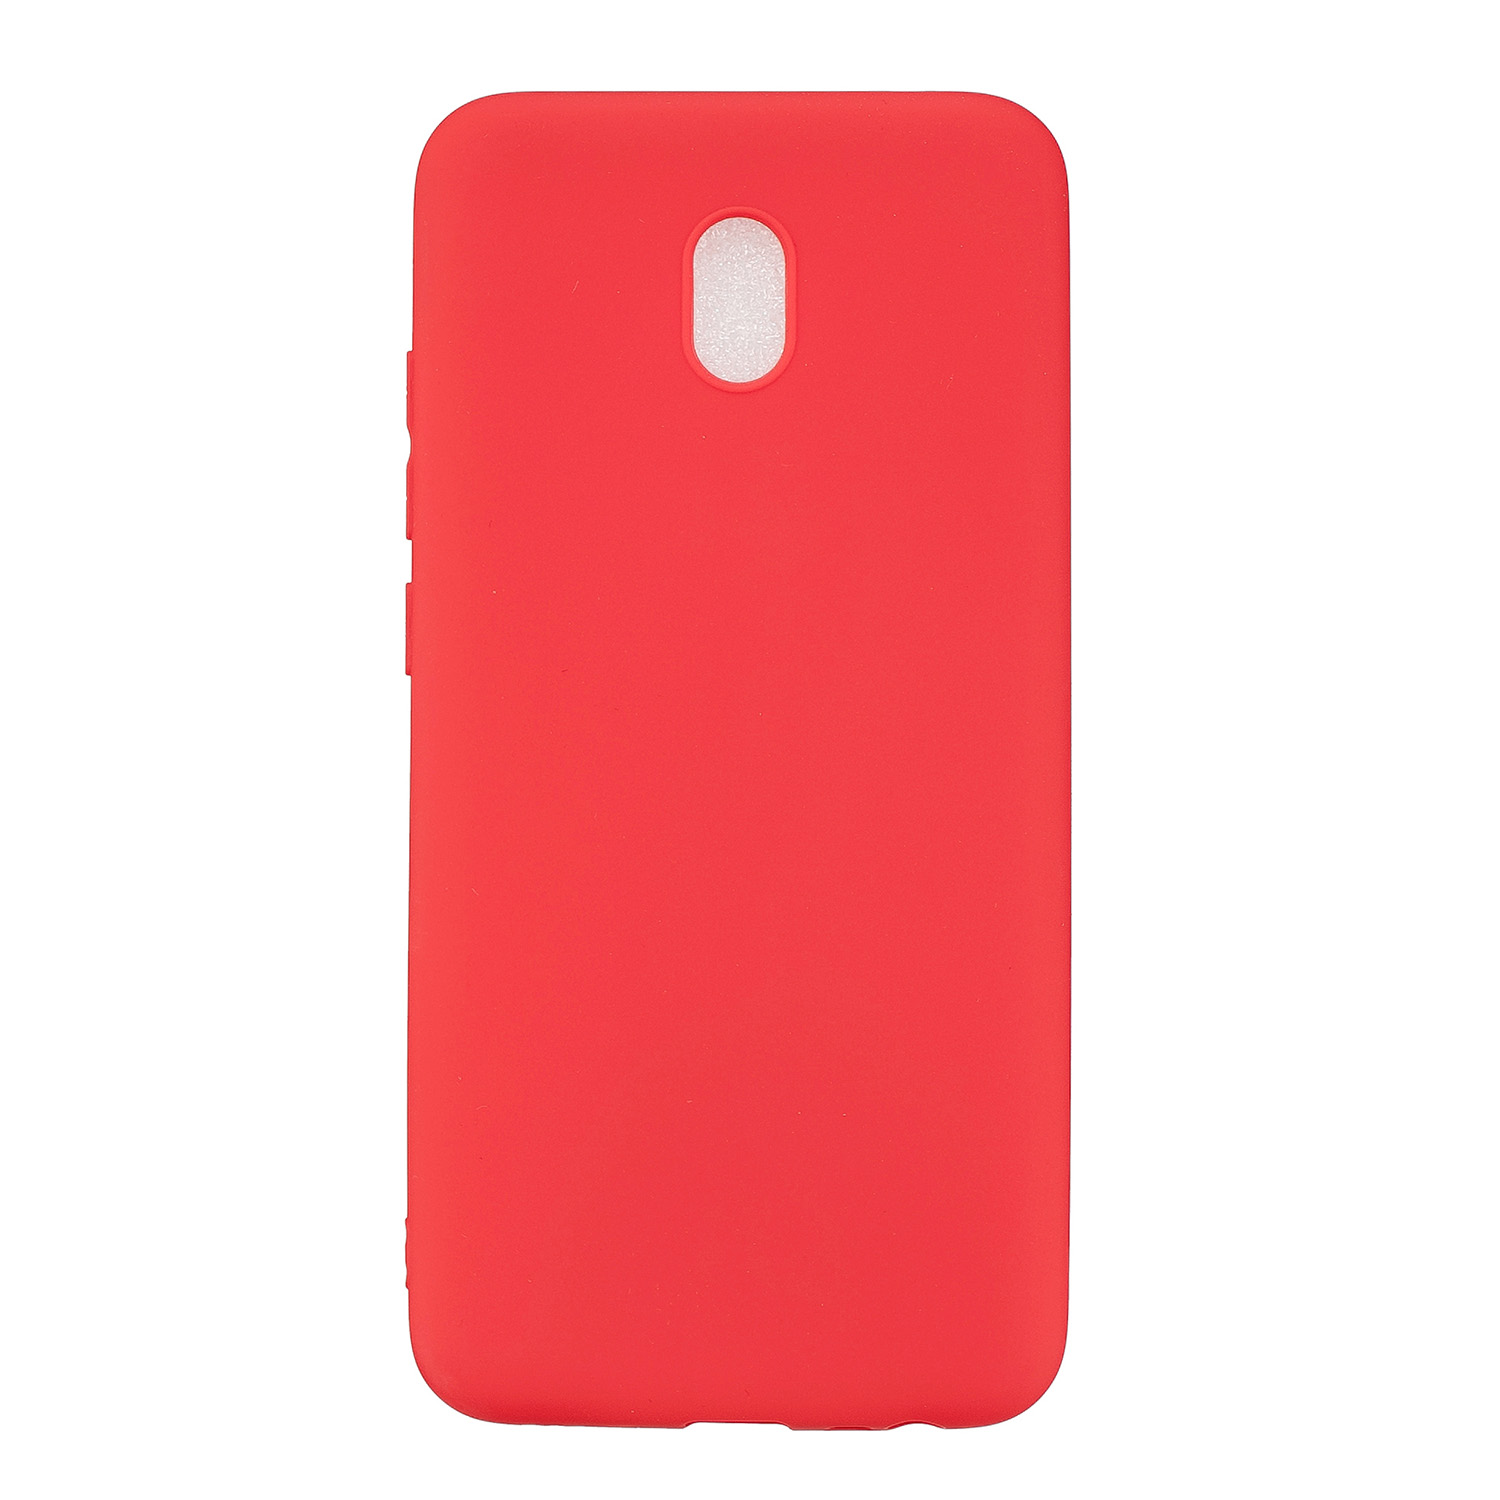 For Redmi 8 8A note 8T TPU Back Cover Soft Candy Color Frosted Surface Shockproof TPU Mobile Phone Protective Case 4